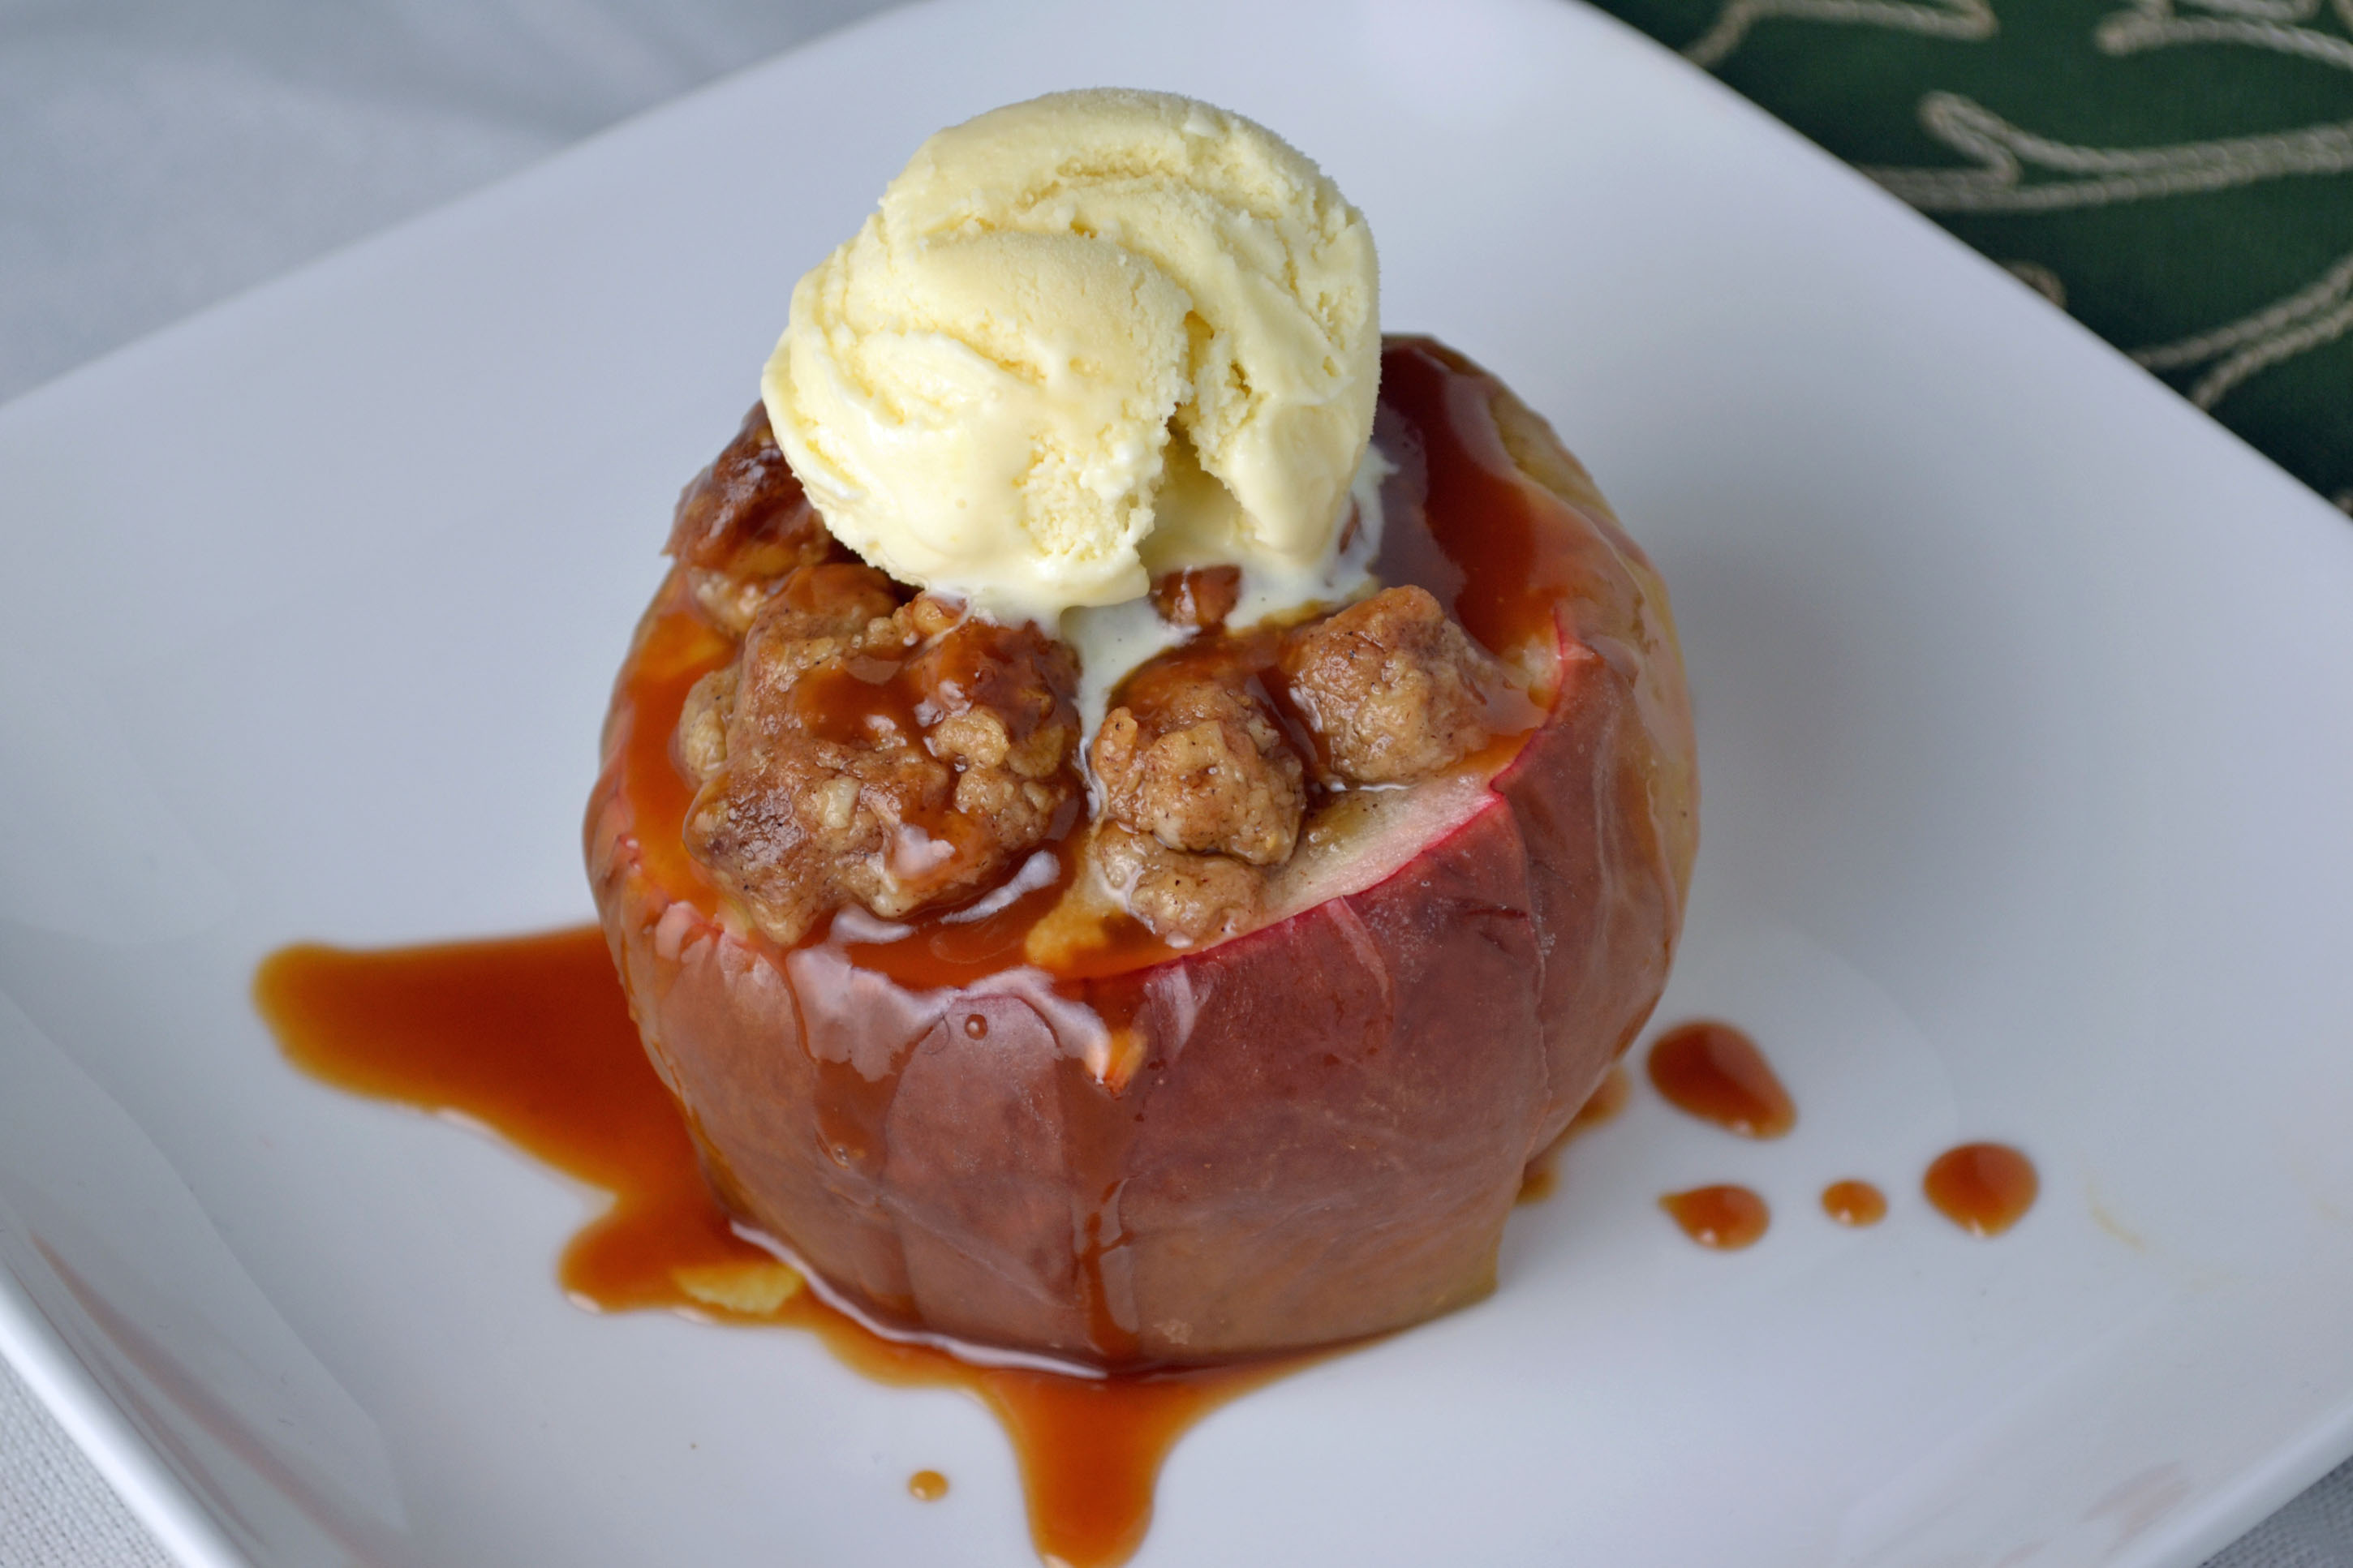 Stuffed Baked Apples with Caramel Sauce and Vanilla Ice Cream